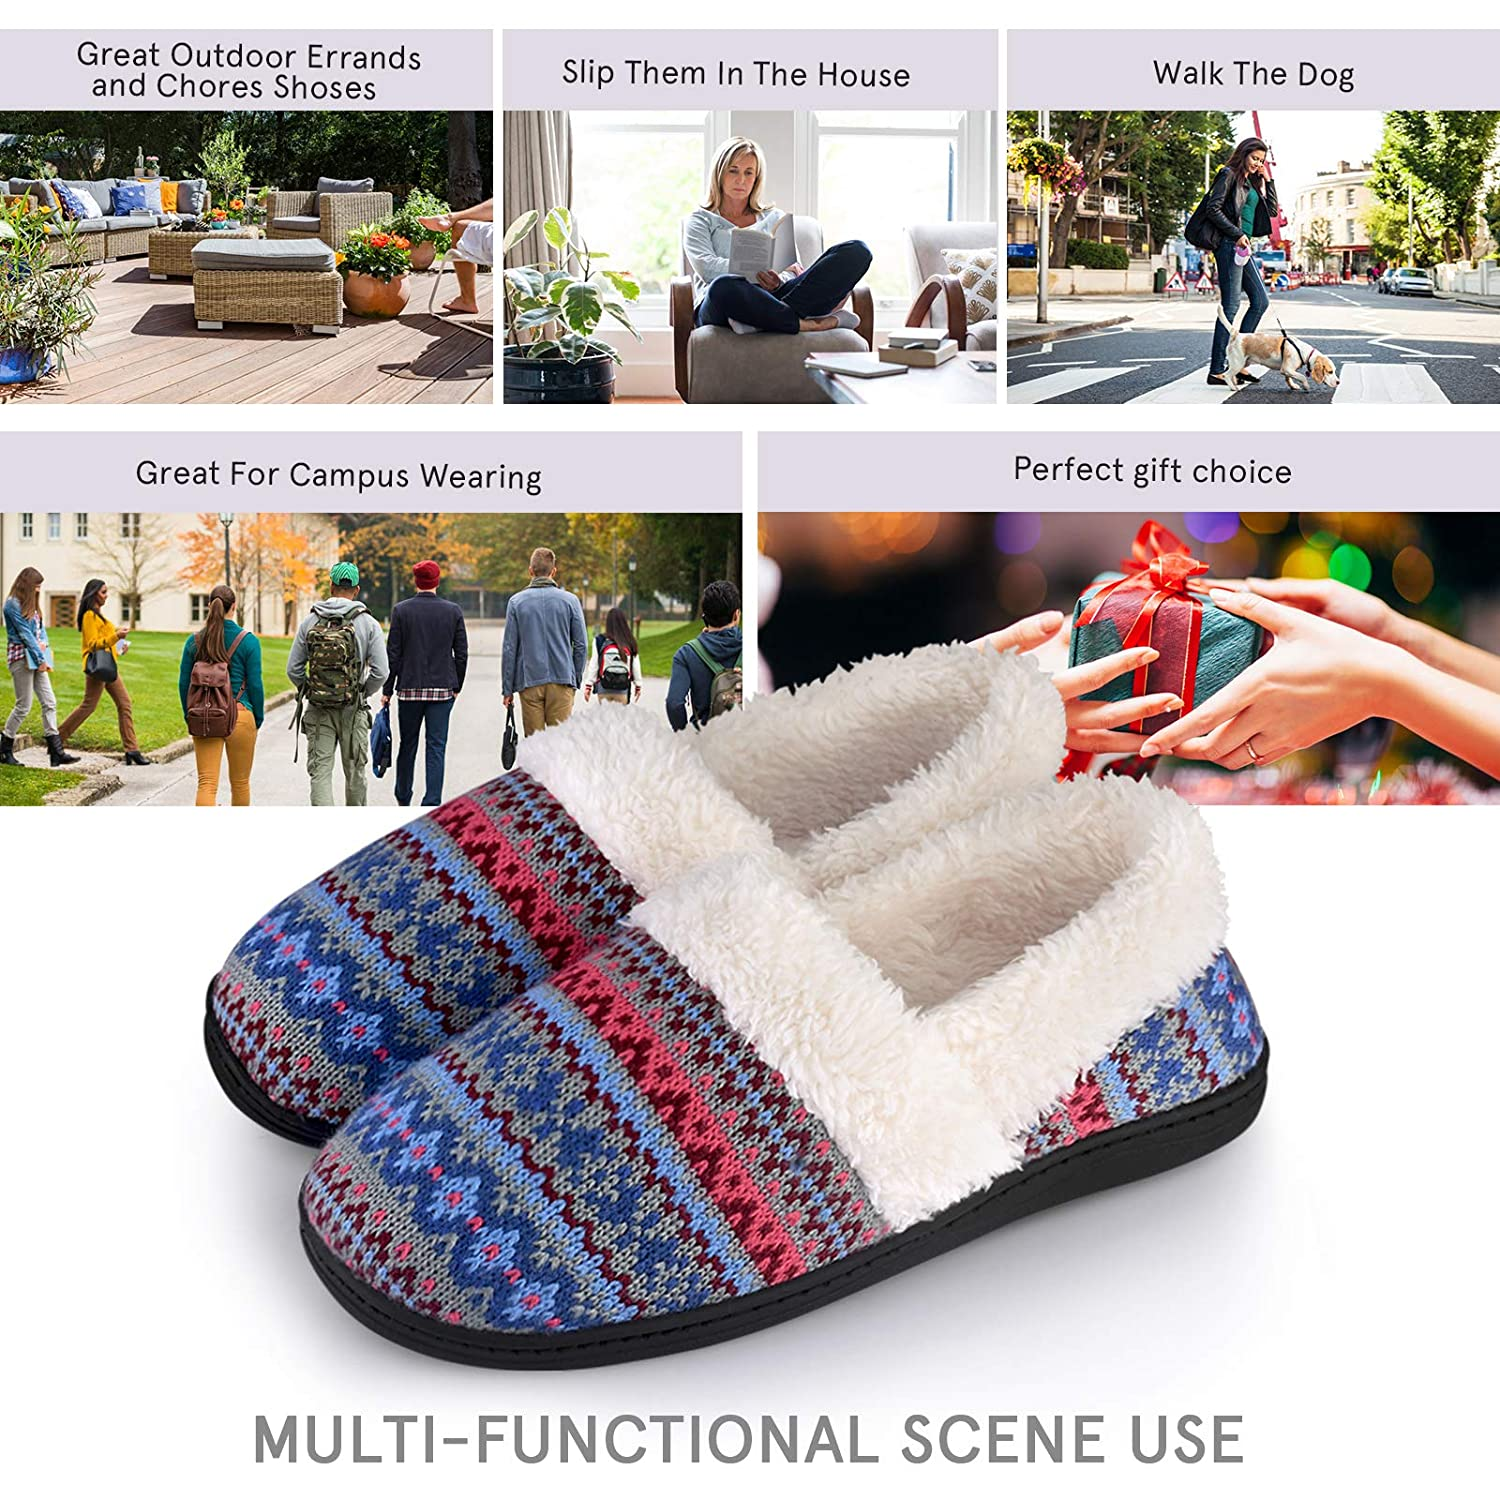 Womens Slippers Non-Slip with Memory Foam Slippers Fuzzy Wool-Like Plush Fleece Lined House Shoes Indoor//Outdoor Anti-Skid Rubber Sole